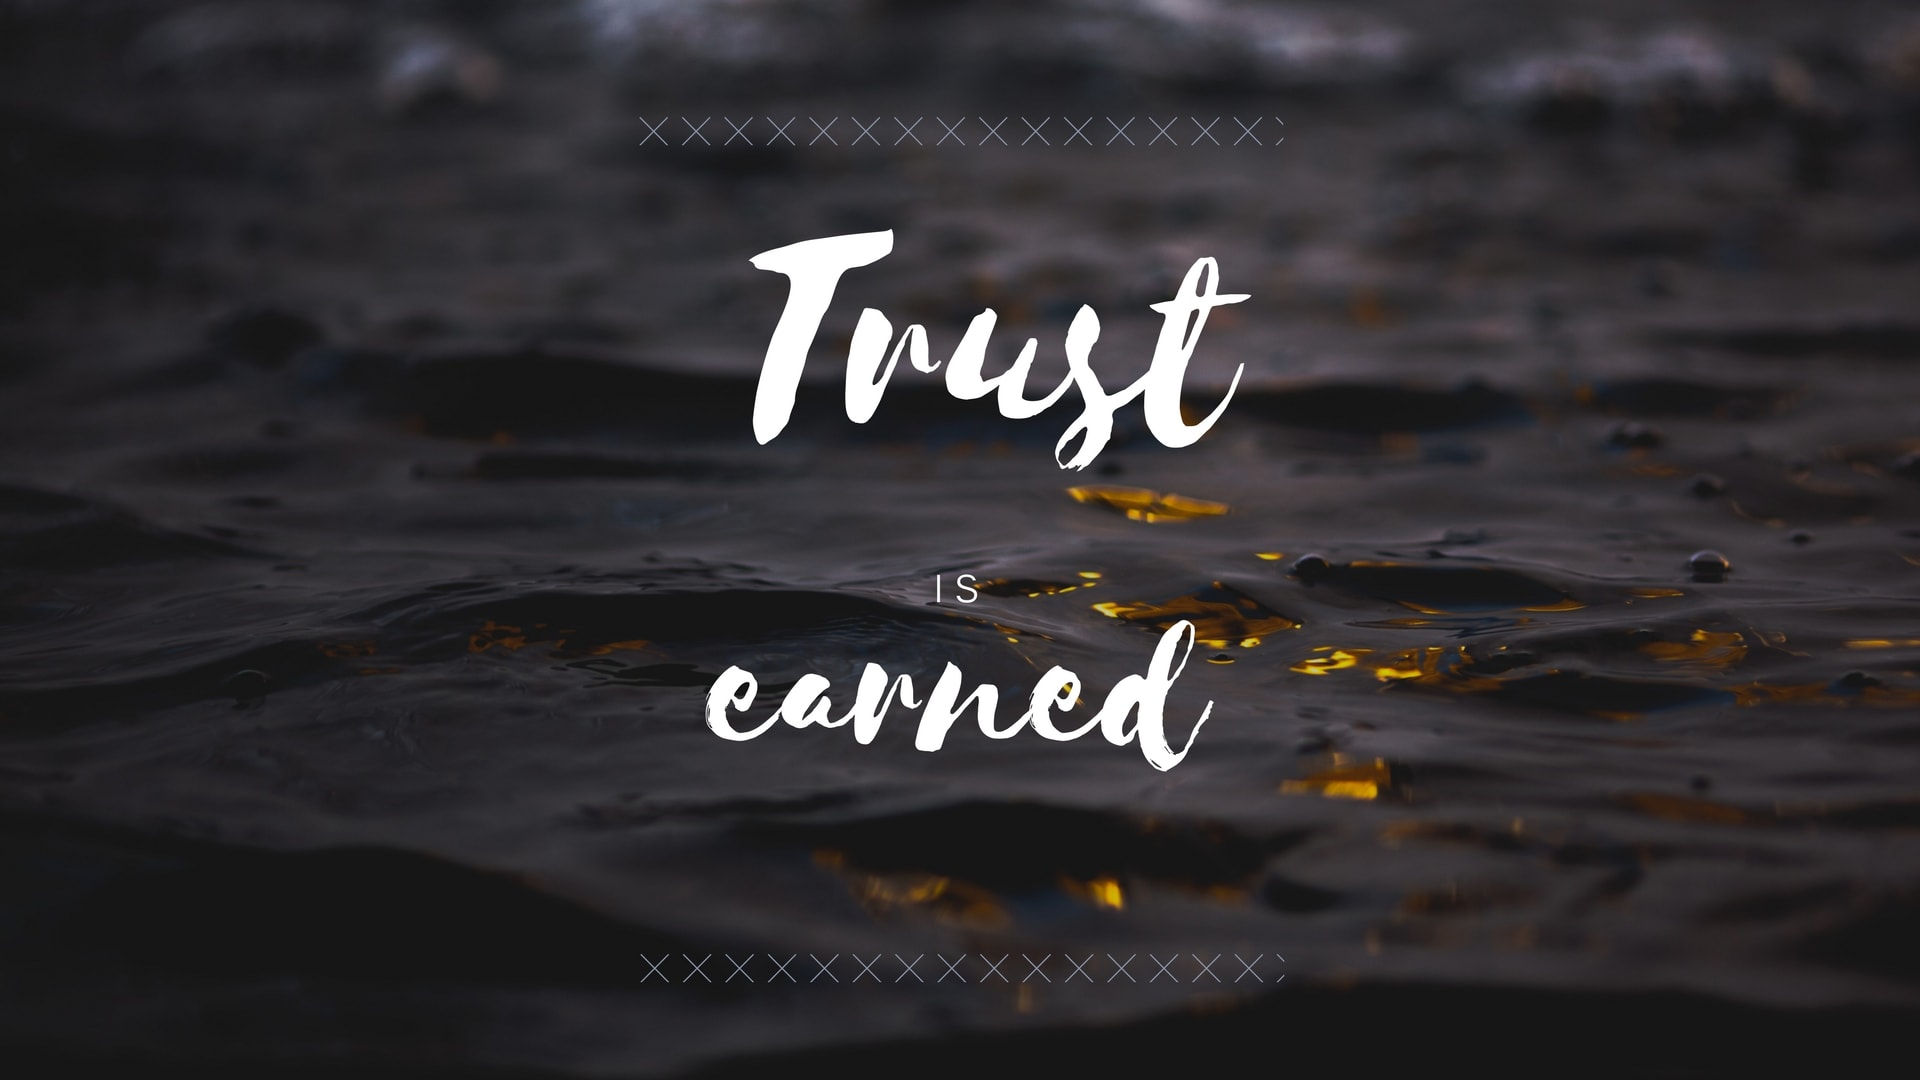 Earning trust and building trust need to occur at the same time